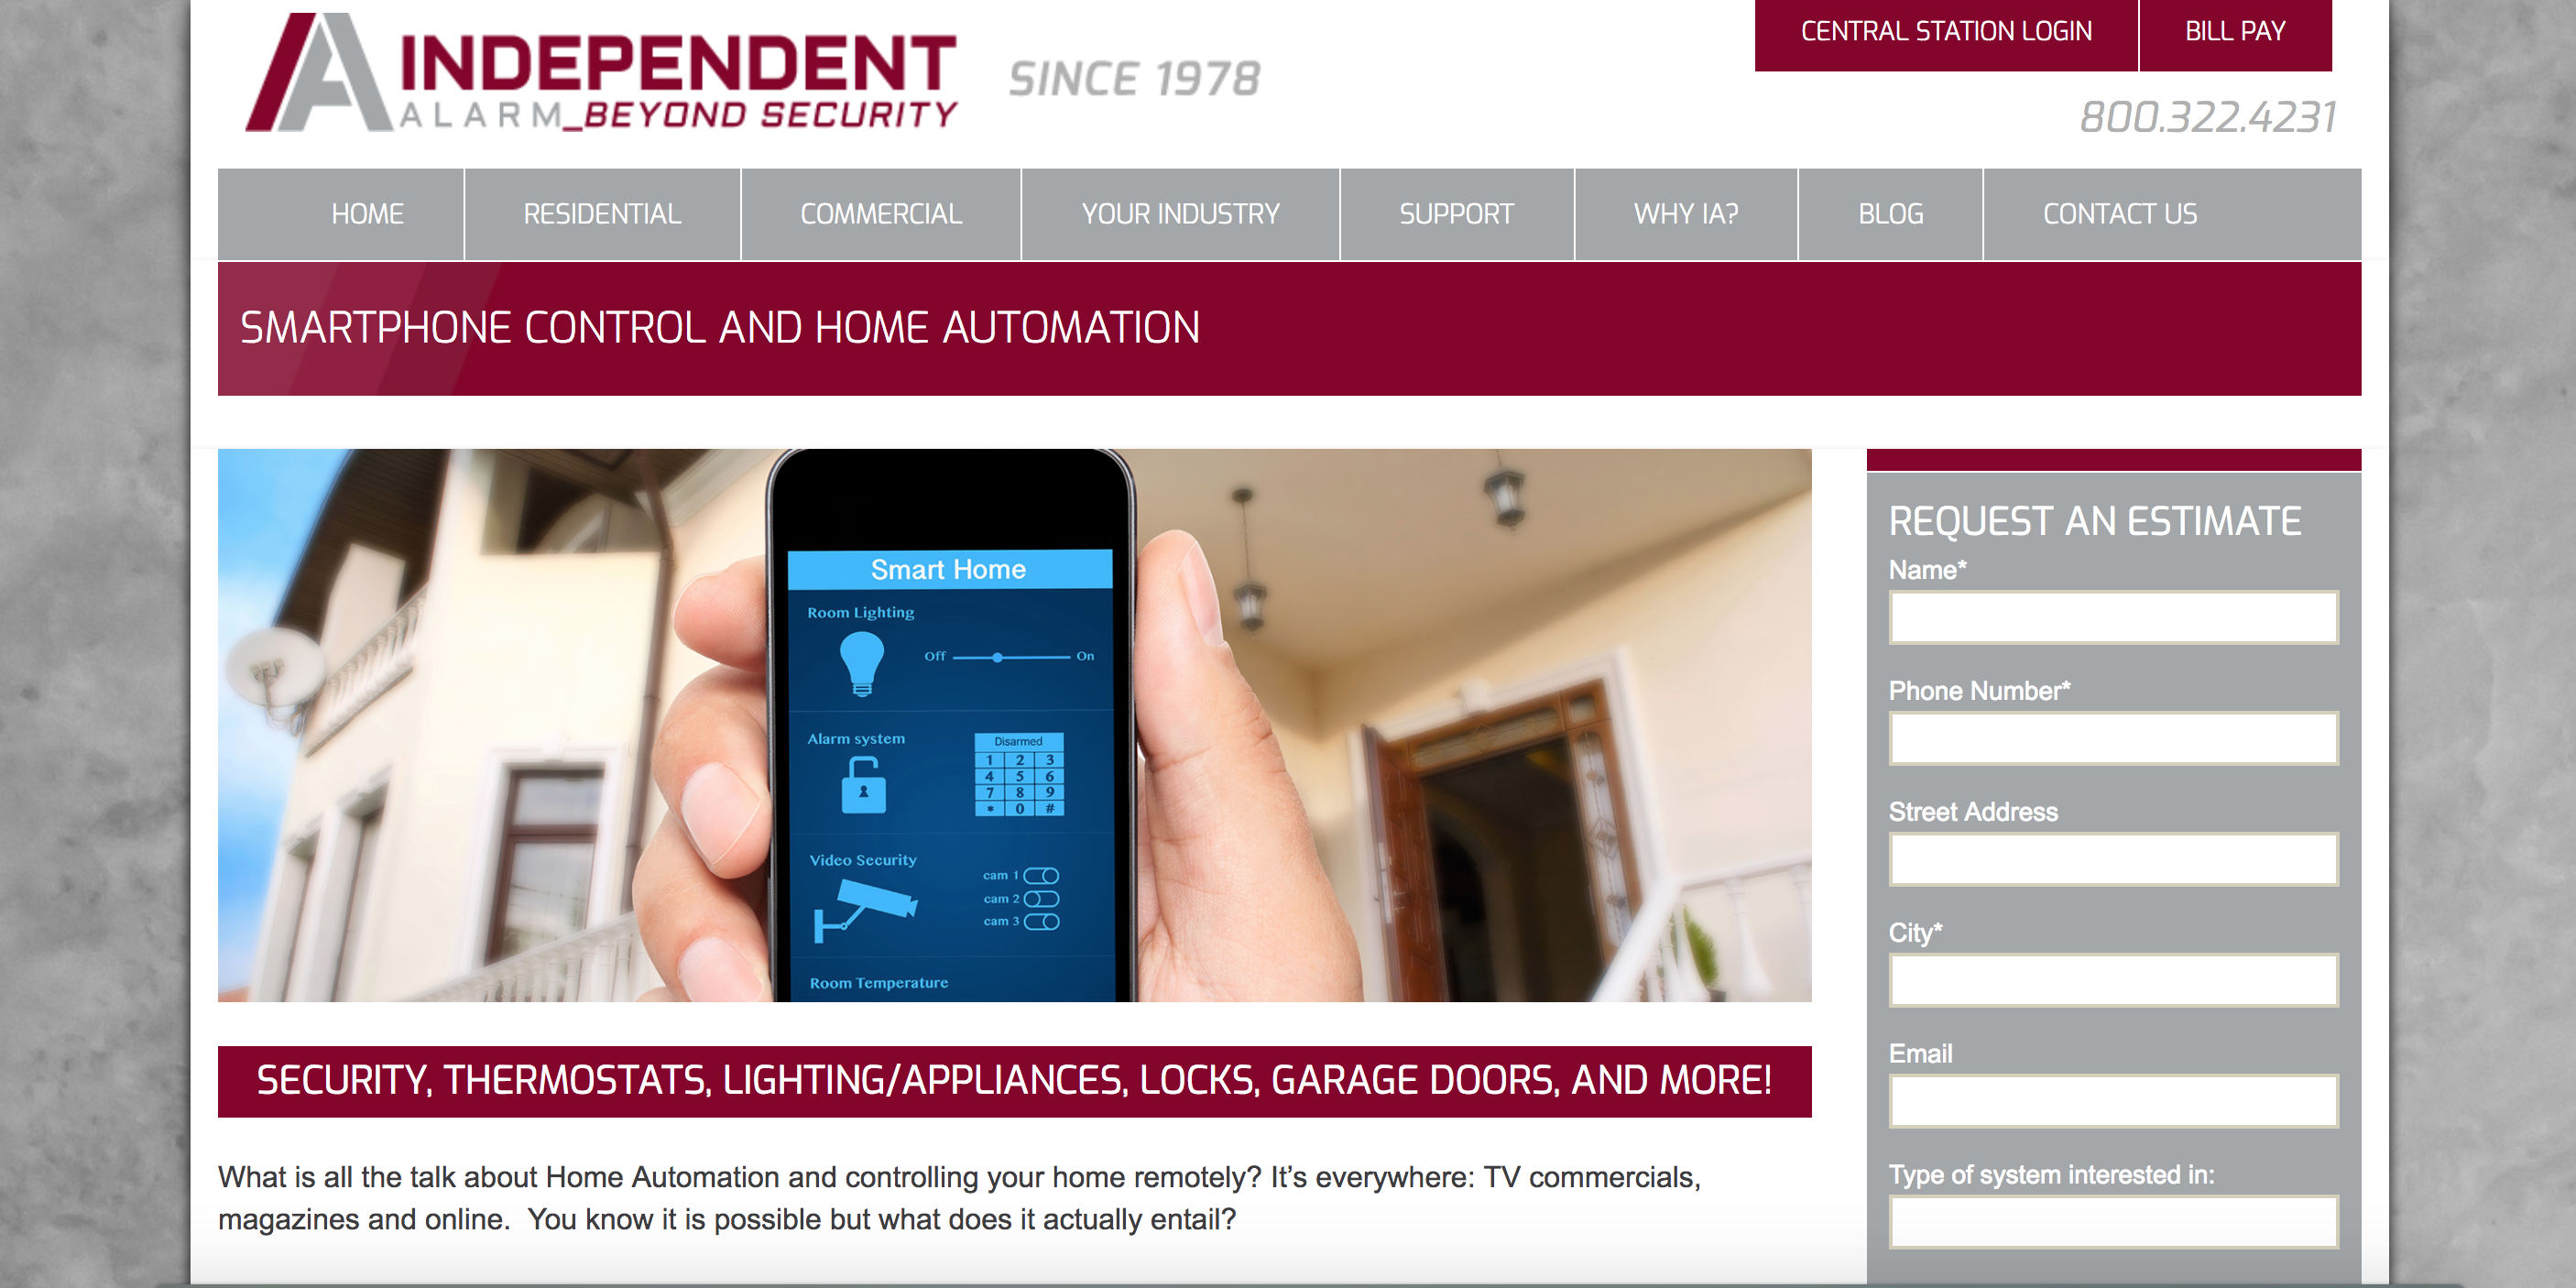 Independent alarm home page